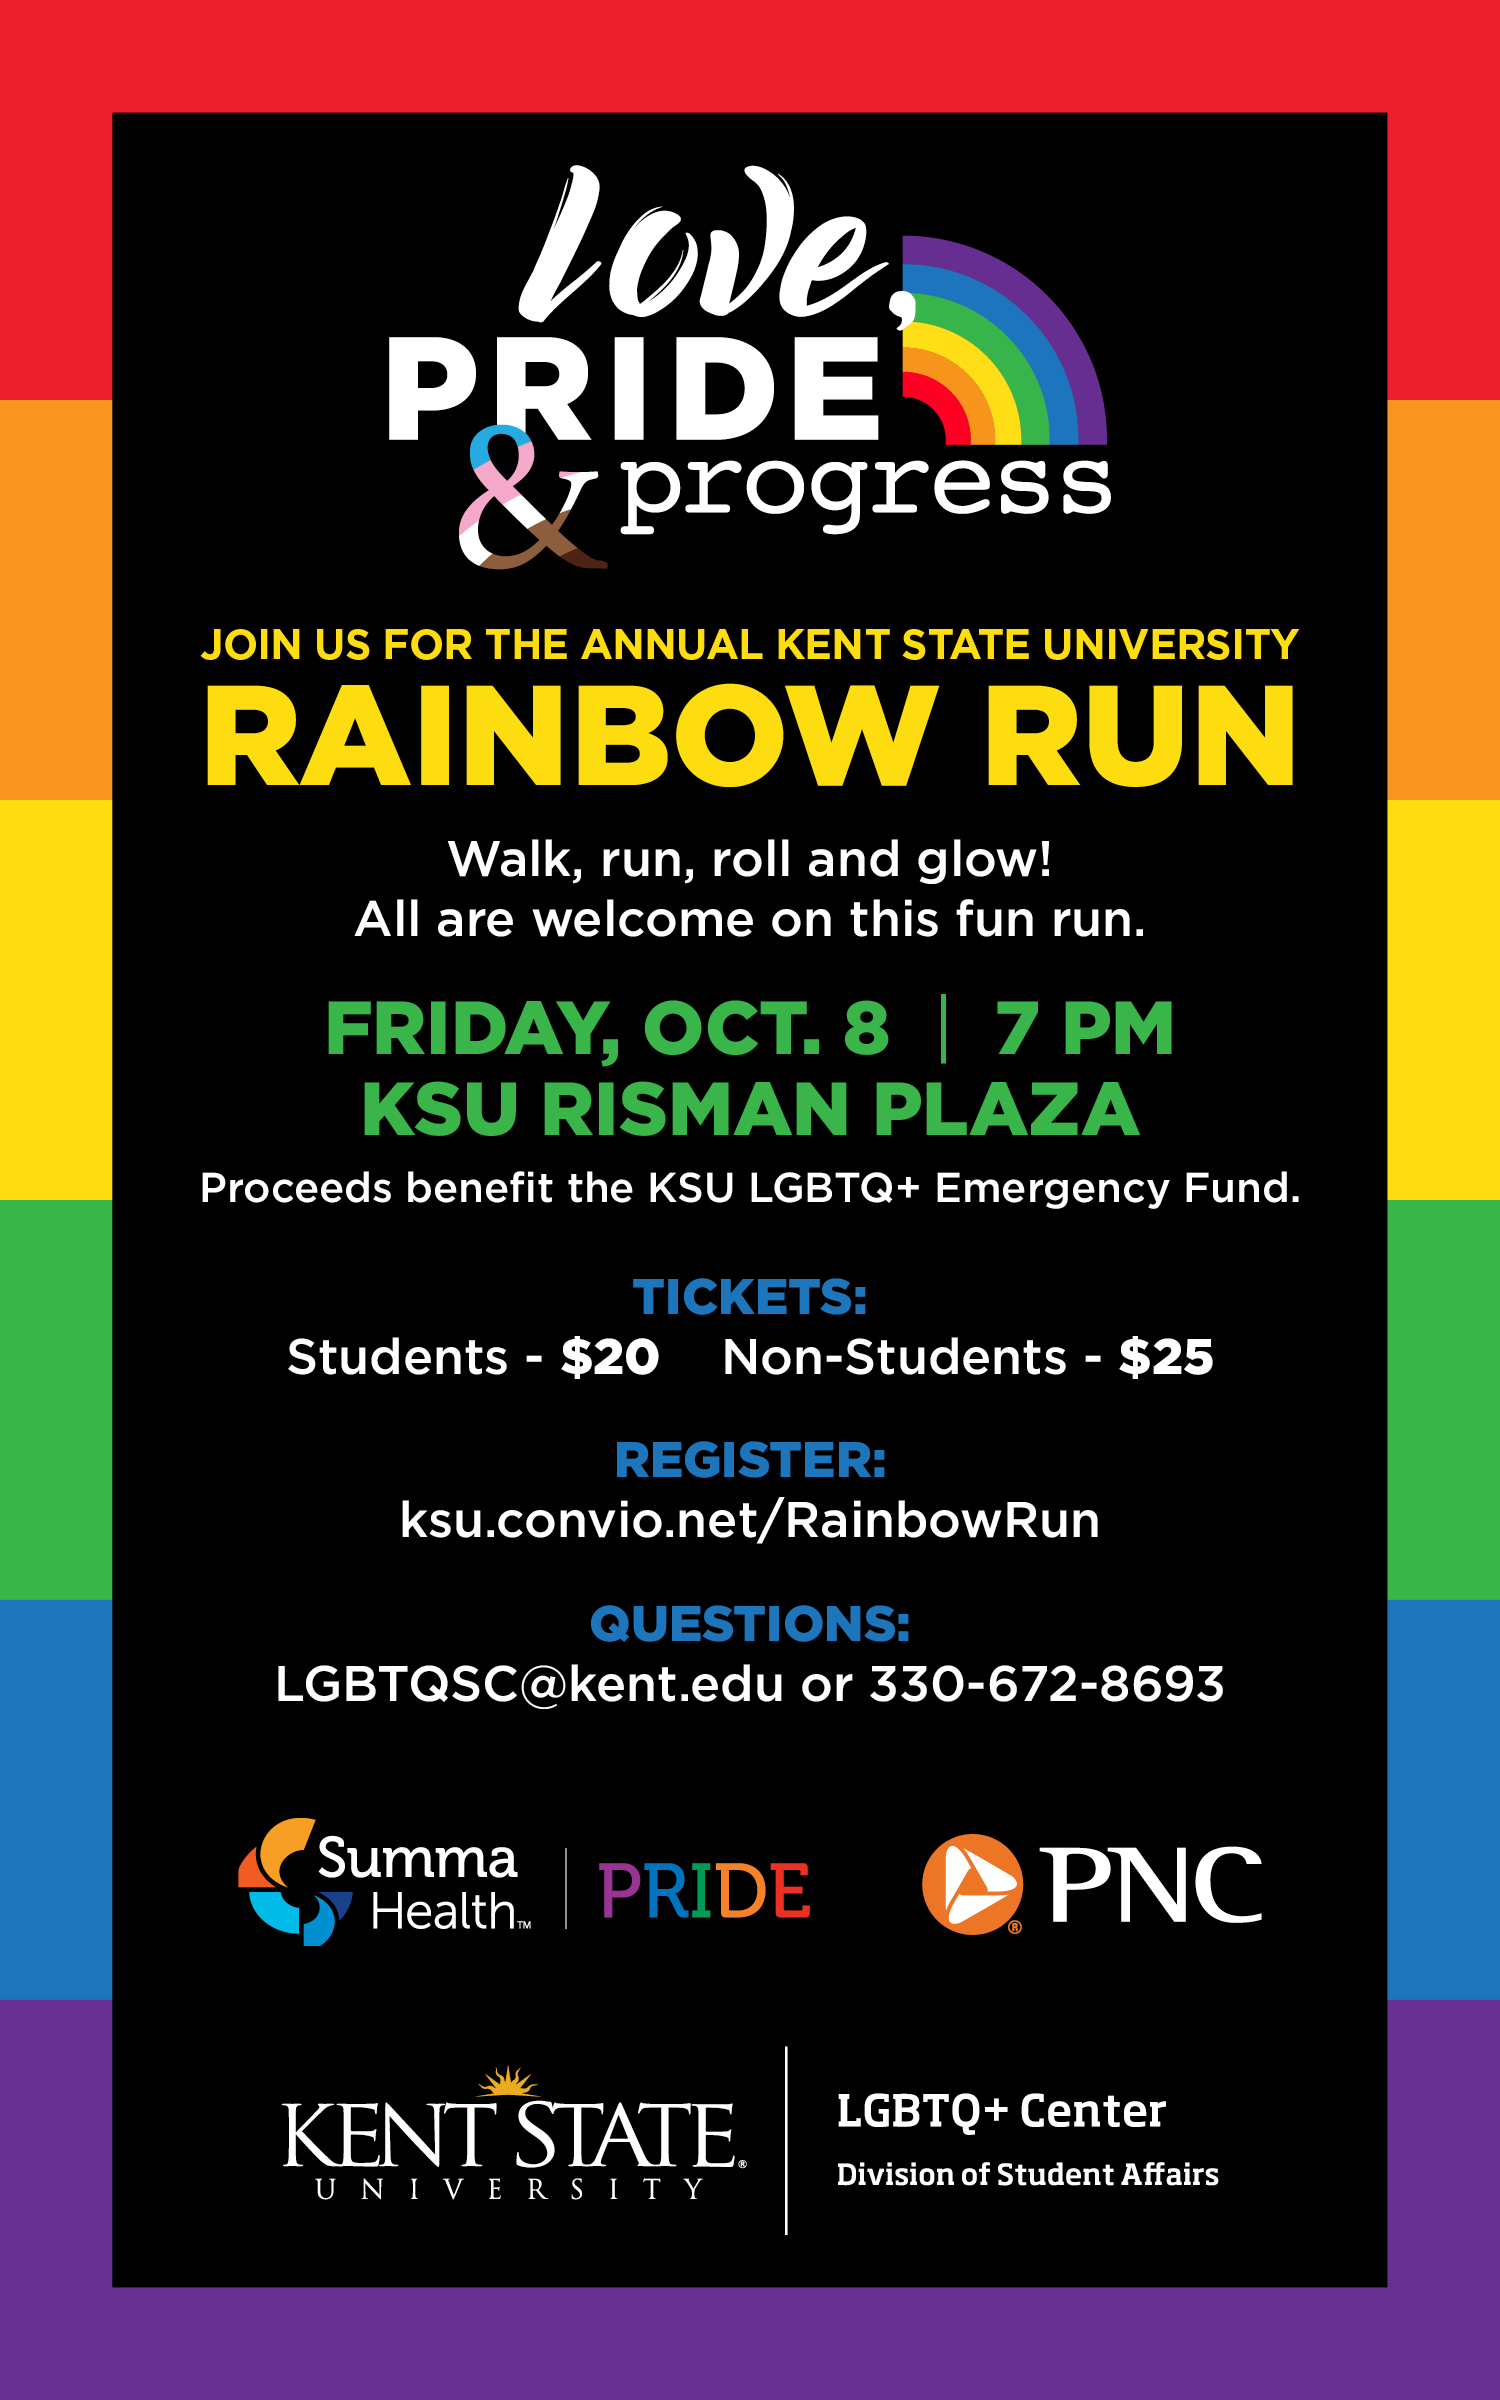 JOIN US FOR THE ANNUAL KENT STATE UNIVERSITY RAINBOW RUN Walk, run, roll and glow! All are welcome on this fun run. FRIDAY, OCT. 8   7 PM KSU RISMAN PLAZA Proceeds benefit the KSU LGBTQ+ Emergency Fund. TICKETS: Students - $20 Non-Students - $25 REGISTER: